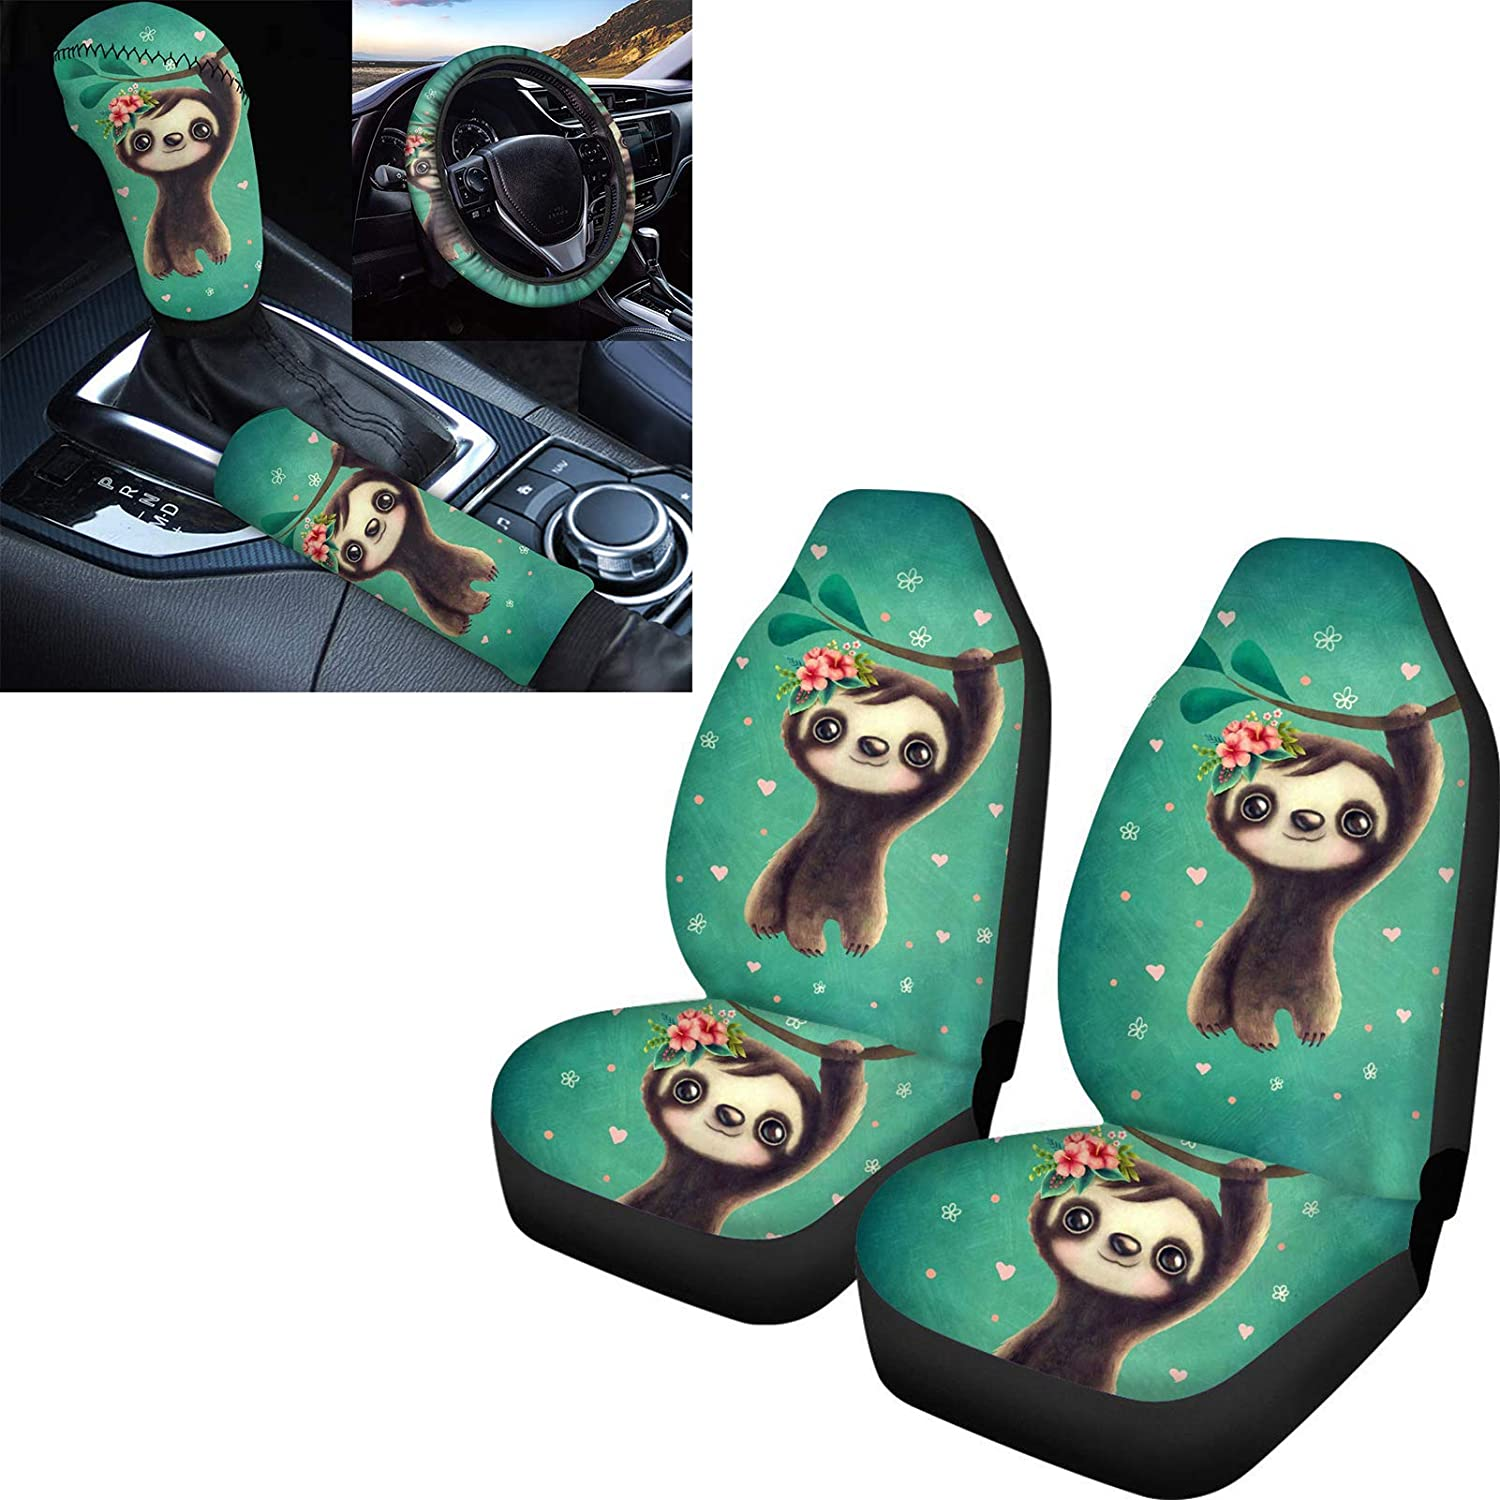 PZZ Max 44% Limited Special Price OFF BEACH Cute Baby Sloth Floral Covers Seat Buc Print Car Front